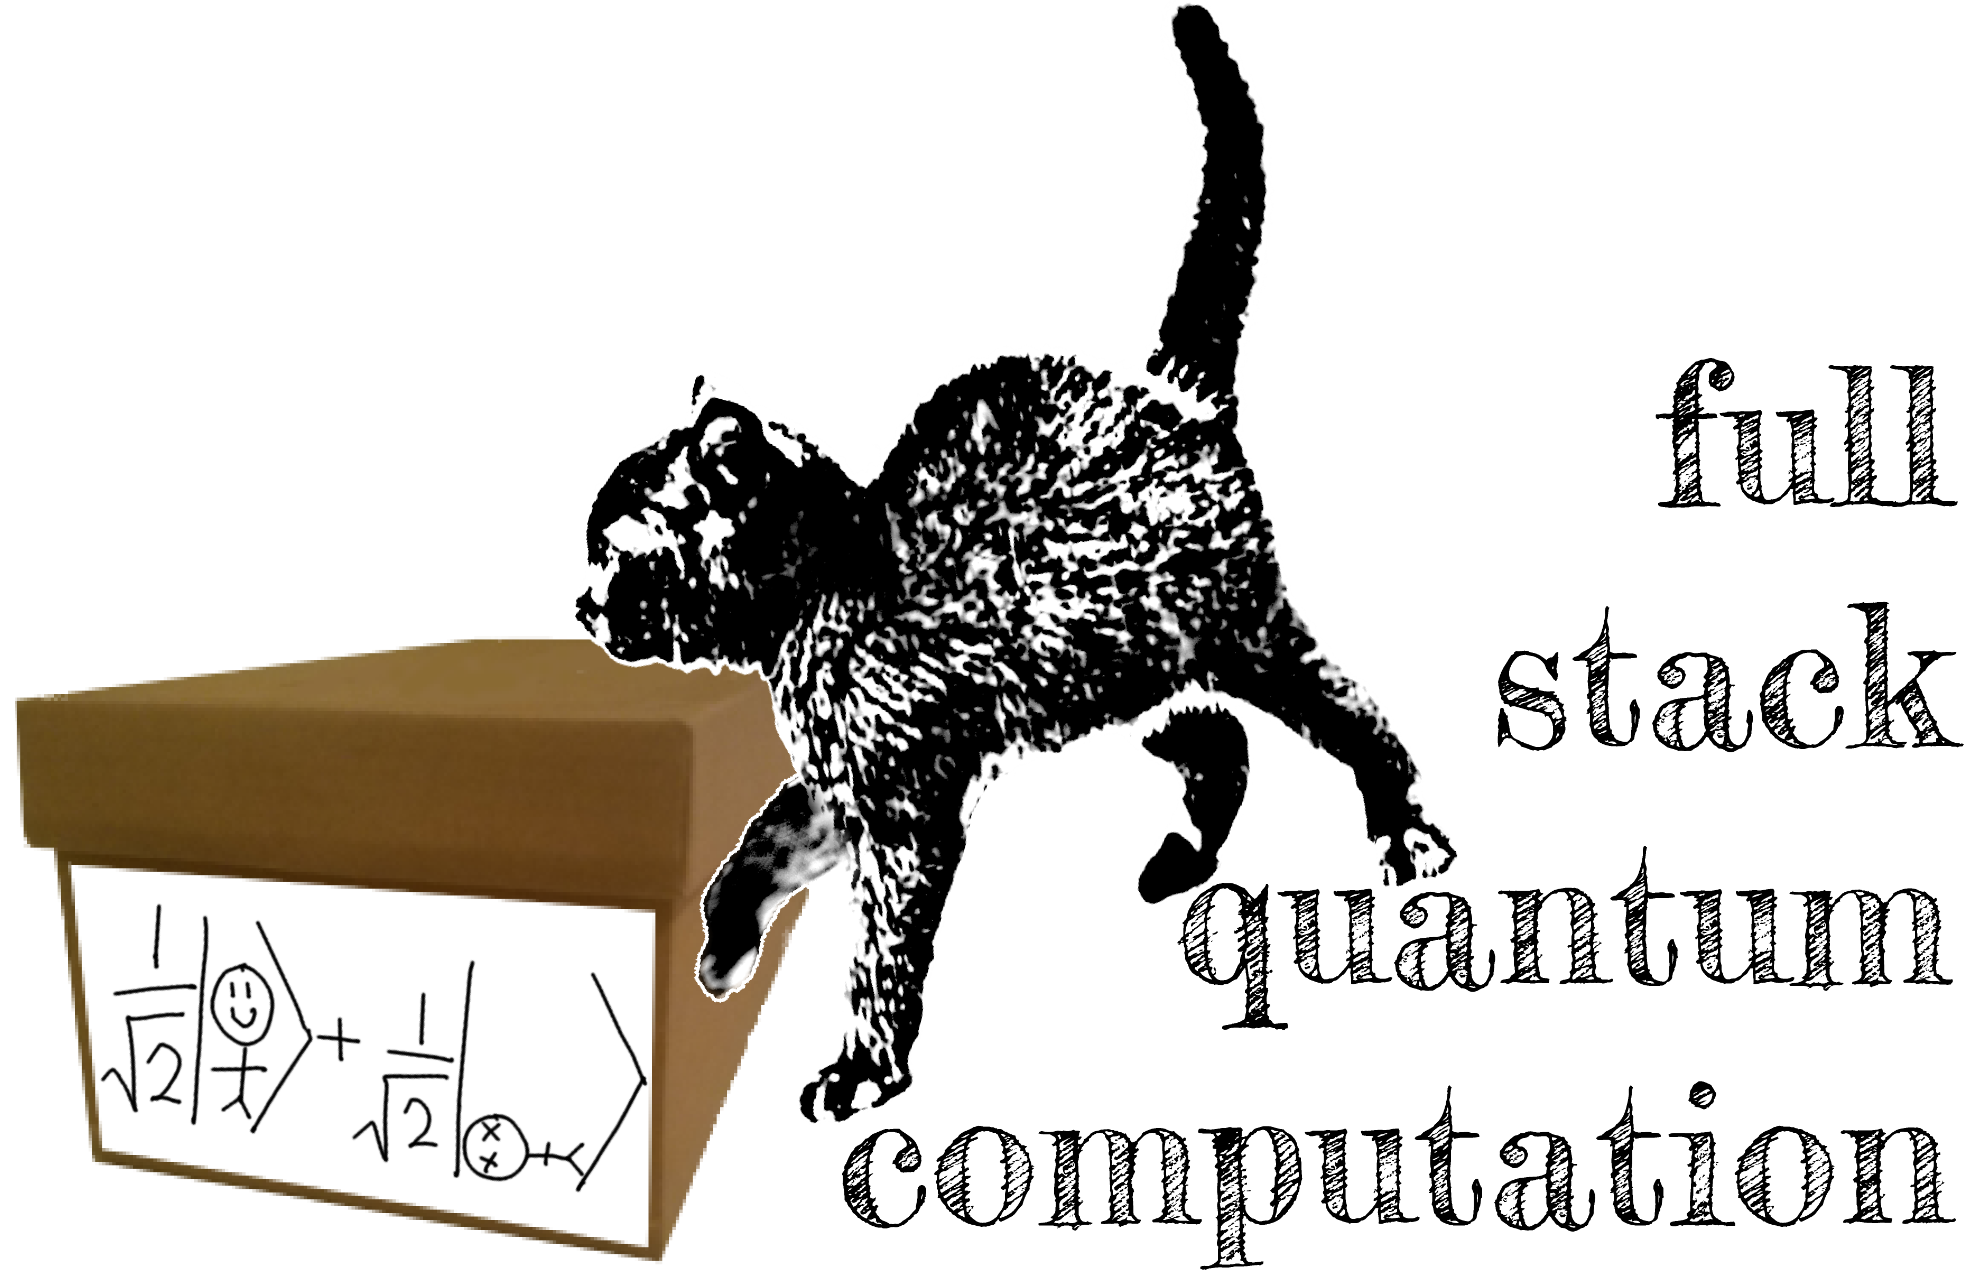 schrodingers cat alternate universe full stack quantum computation black cat human half dead half alive superposition logo